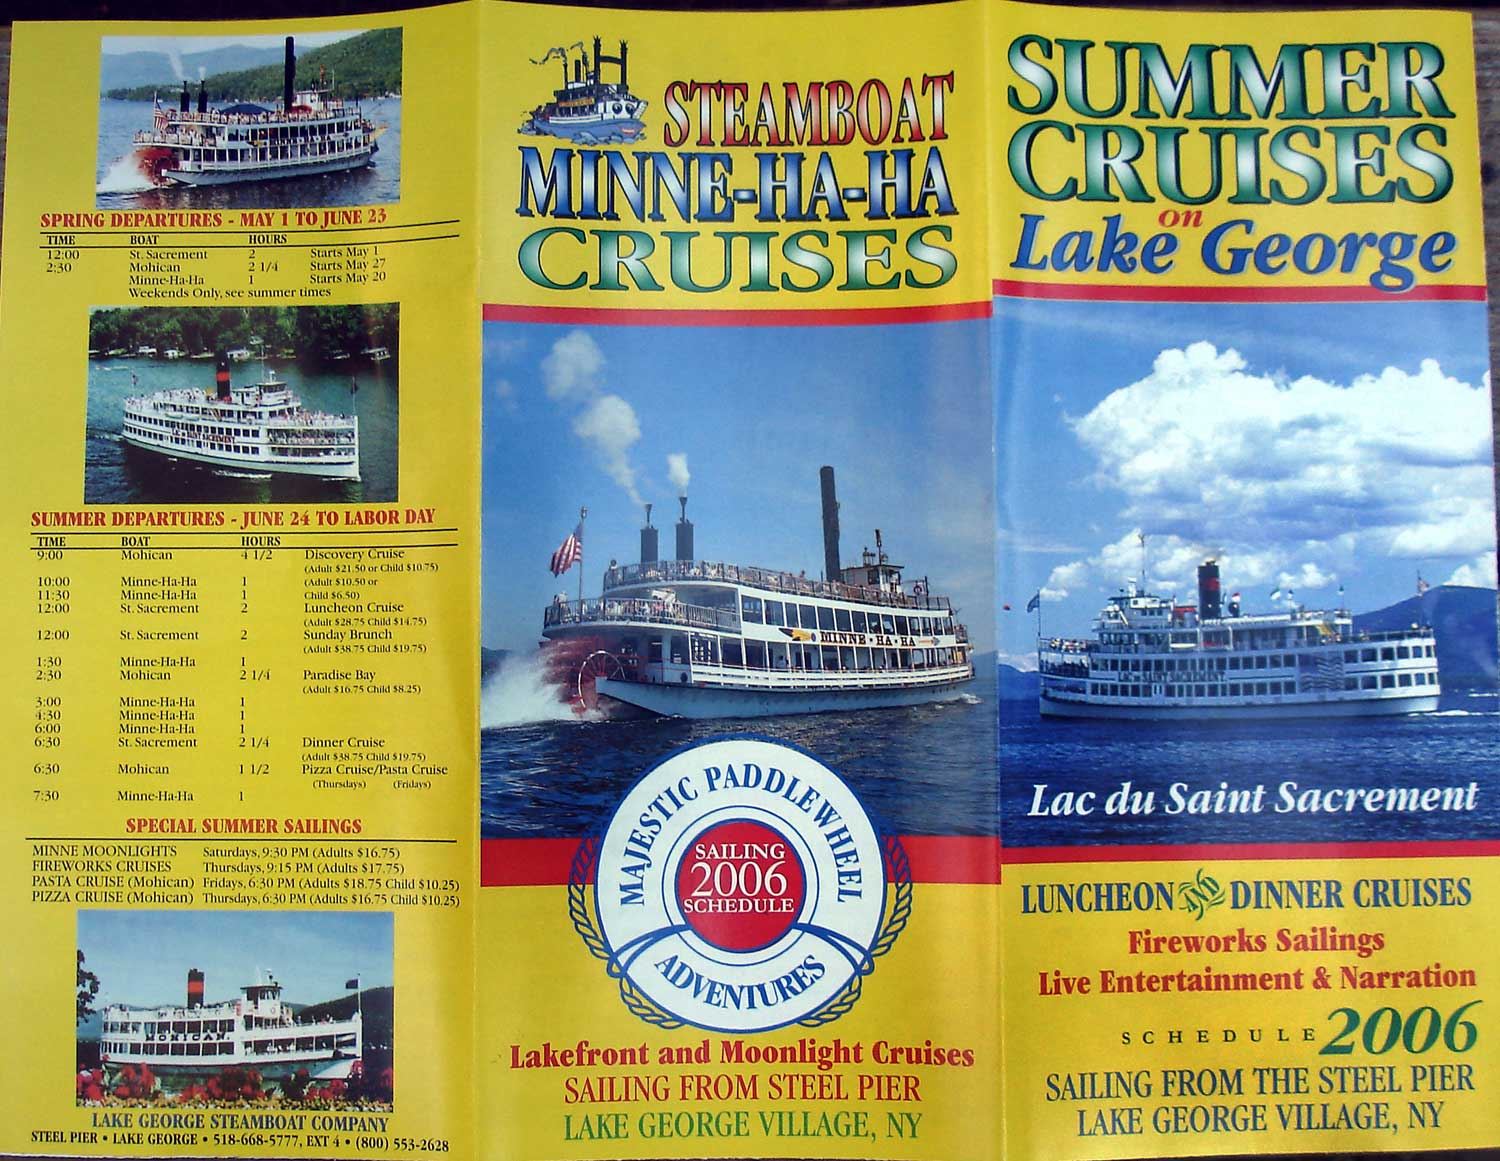 Lake George Campground Battleground Pictures - Cruise ship brochure